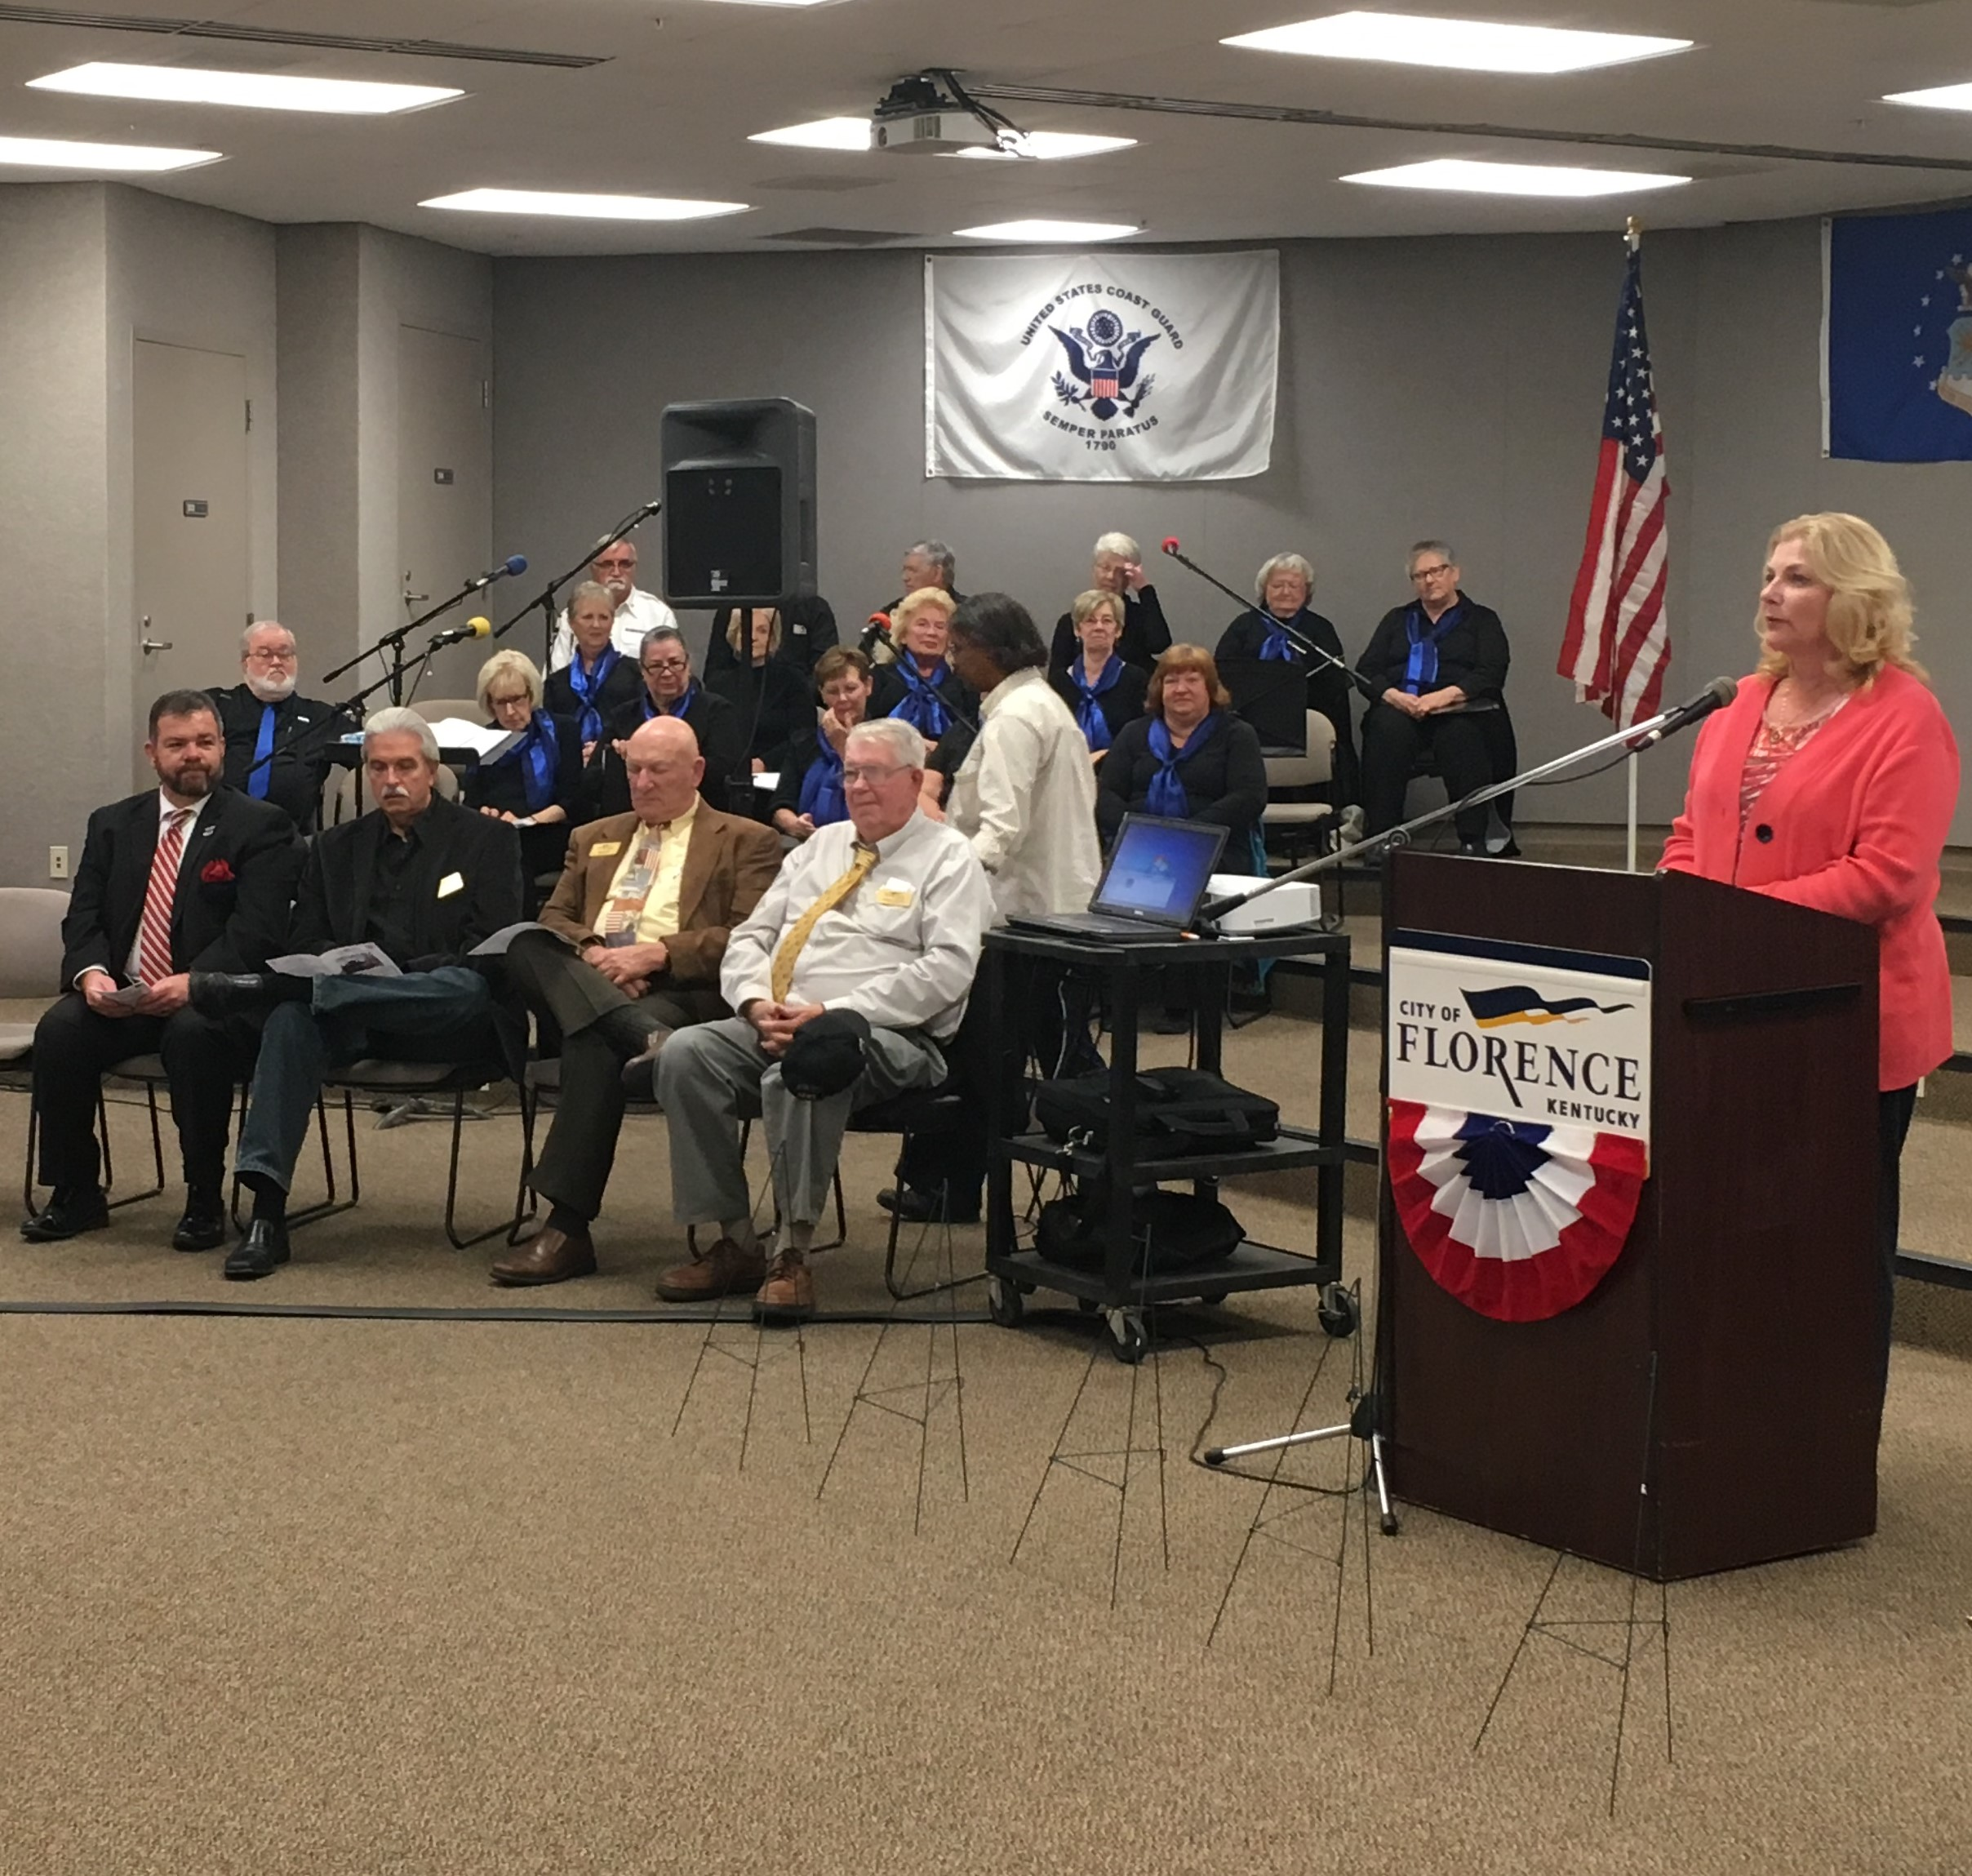 Florence honors those who served, welcomes adopted unit ...